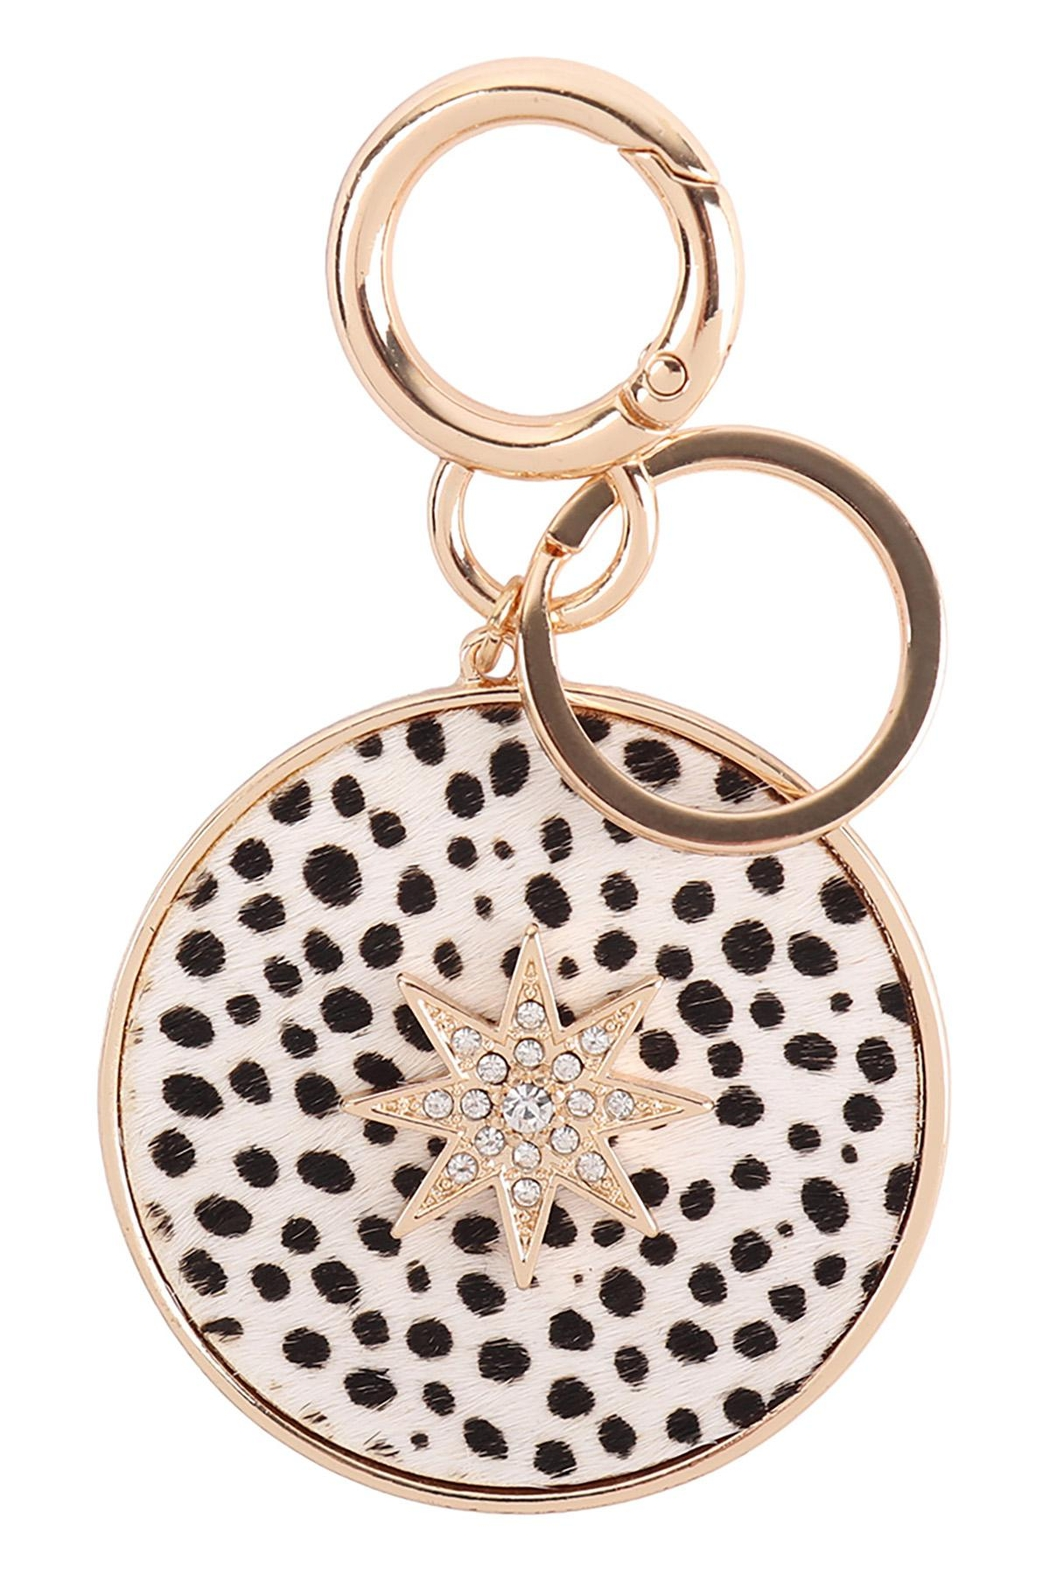 Riah Fashion Paved-Starburst-With-Real-Calf-Hair-Leather-Keychain - Main Image